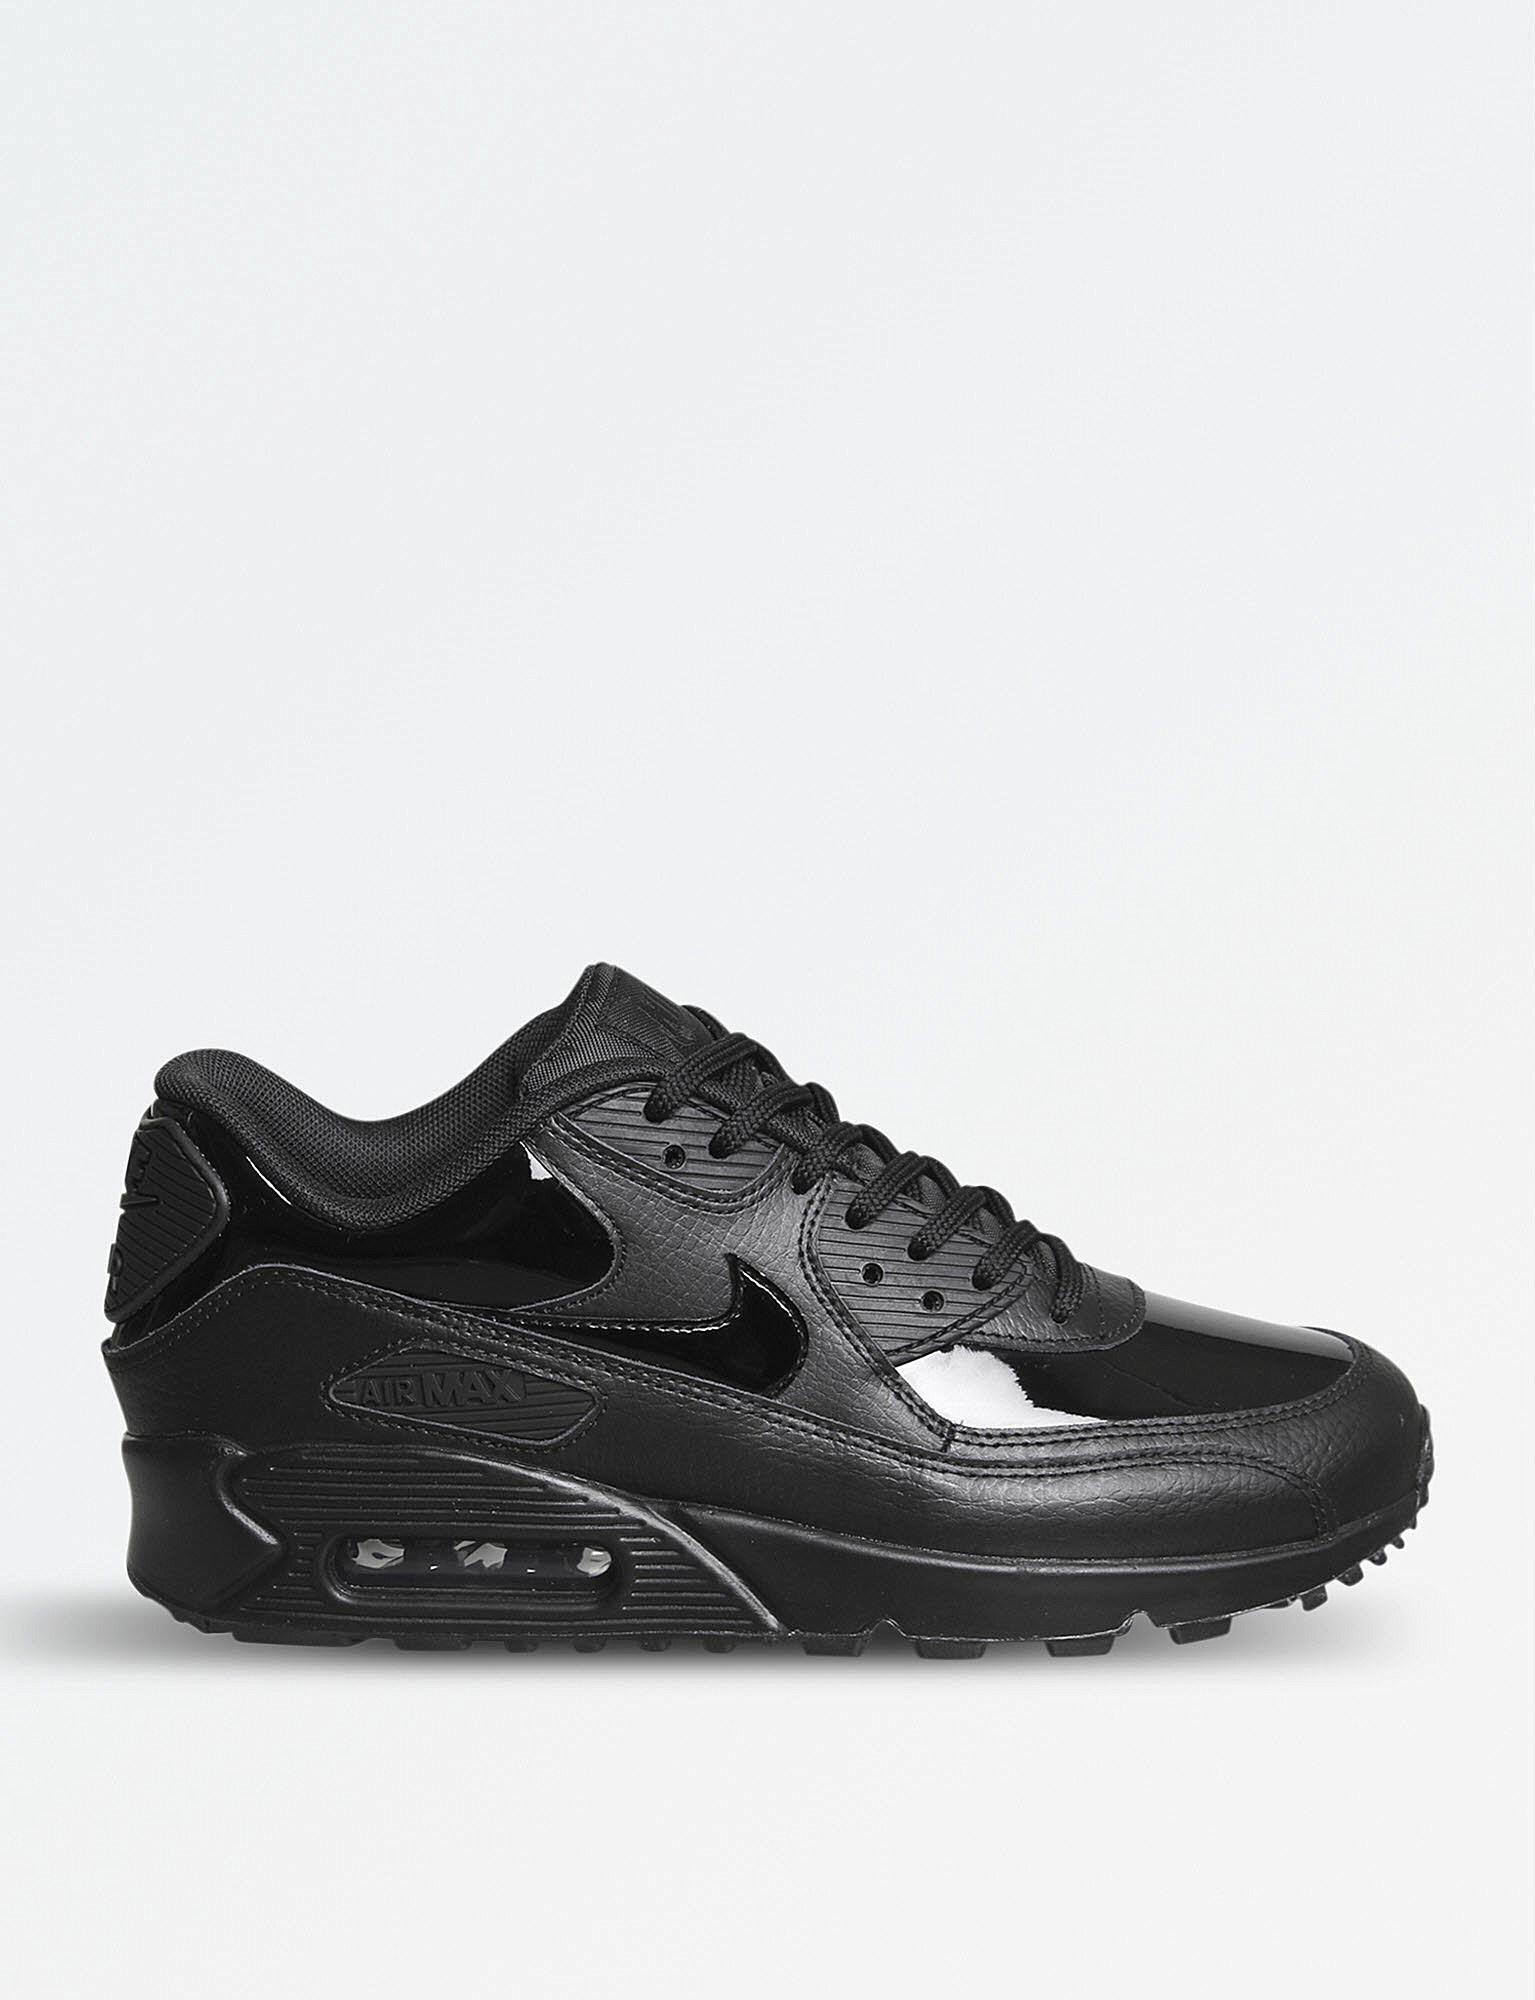 promo code a1017 29812 Lyst - Nike Air Max 90 Patent Leather Trainers in Black for Men nike air max